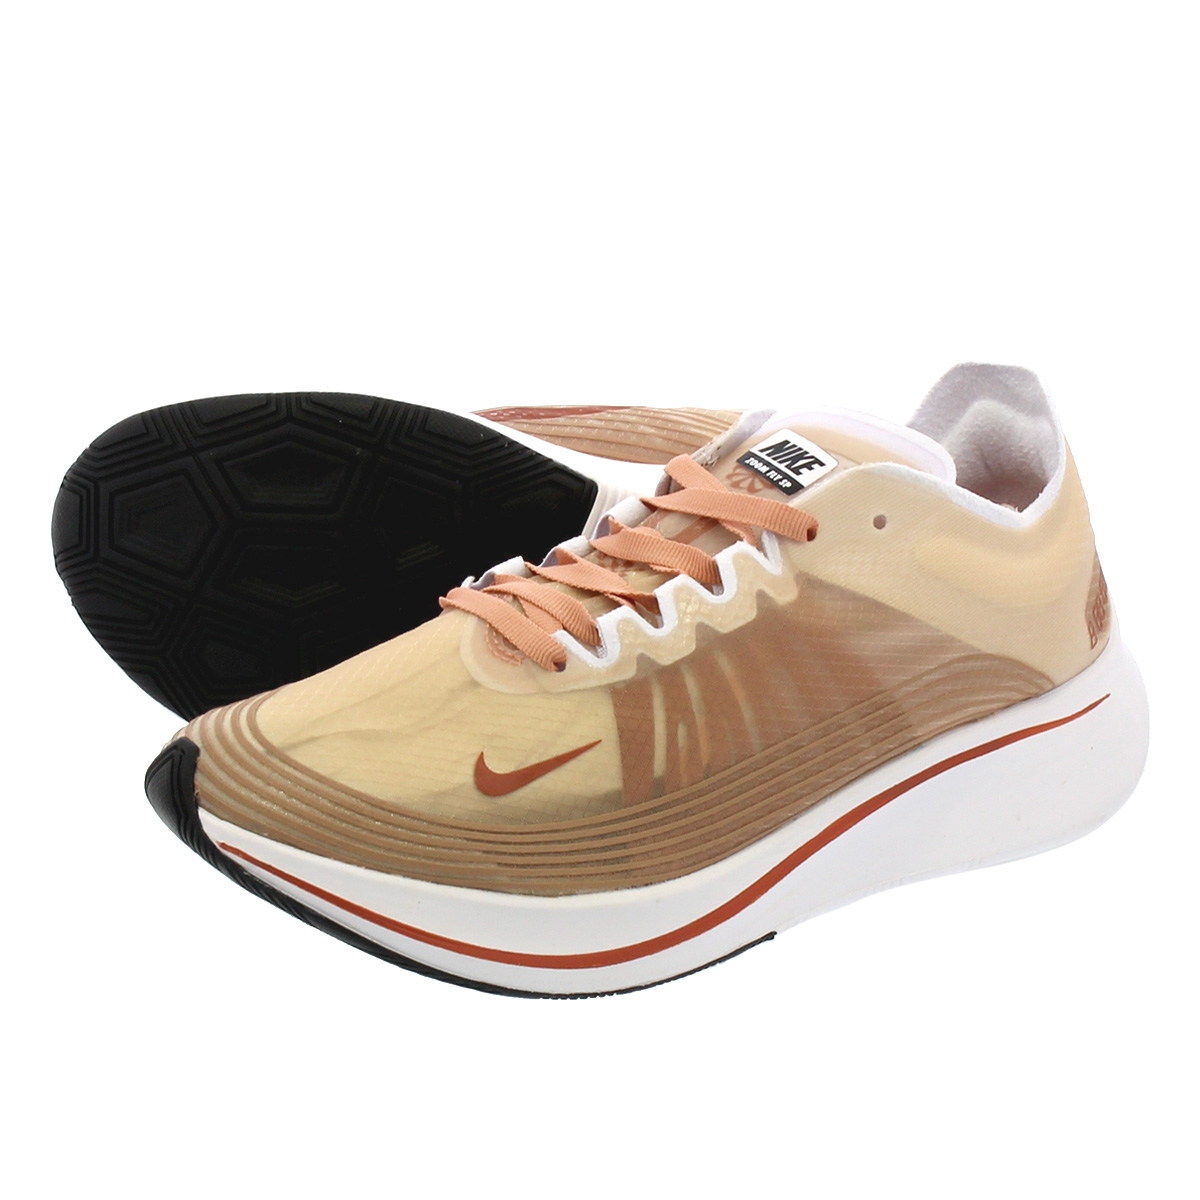 19ebc56e2ade NIKE WMNS ZOOM FLY SP Nike women zoom fly SP DUSTY PEACH GUAVA ICE DUSTY  PEACH aj8229-200